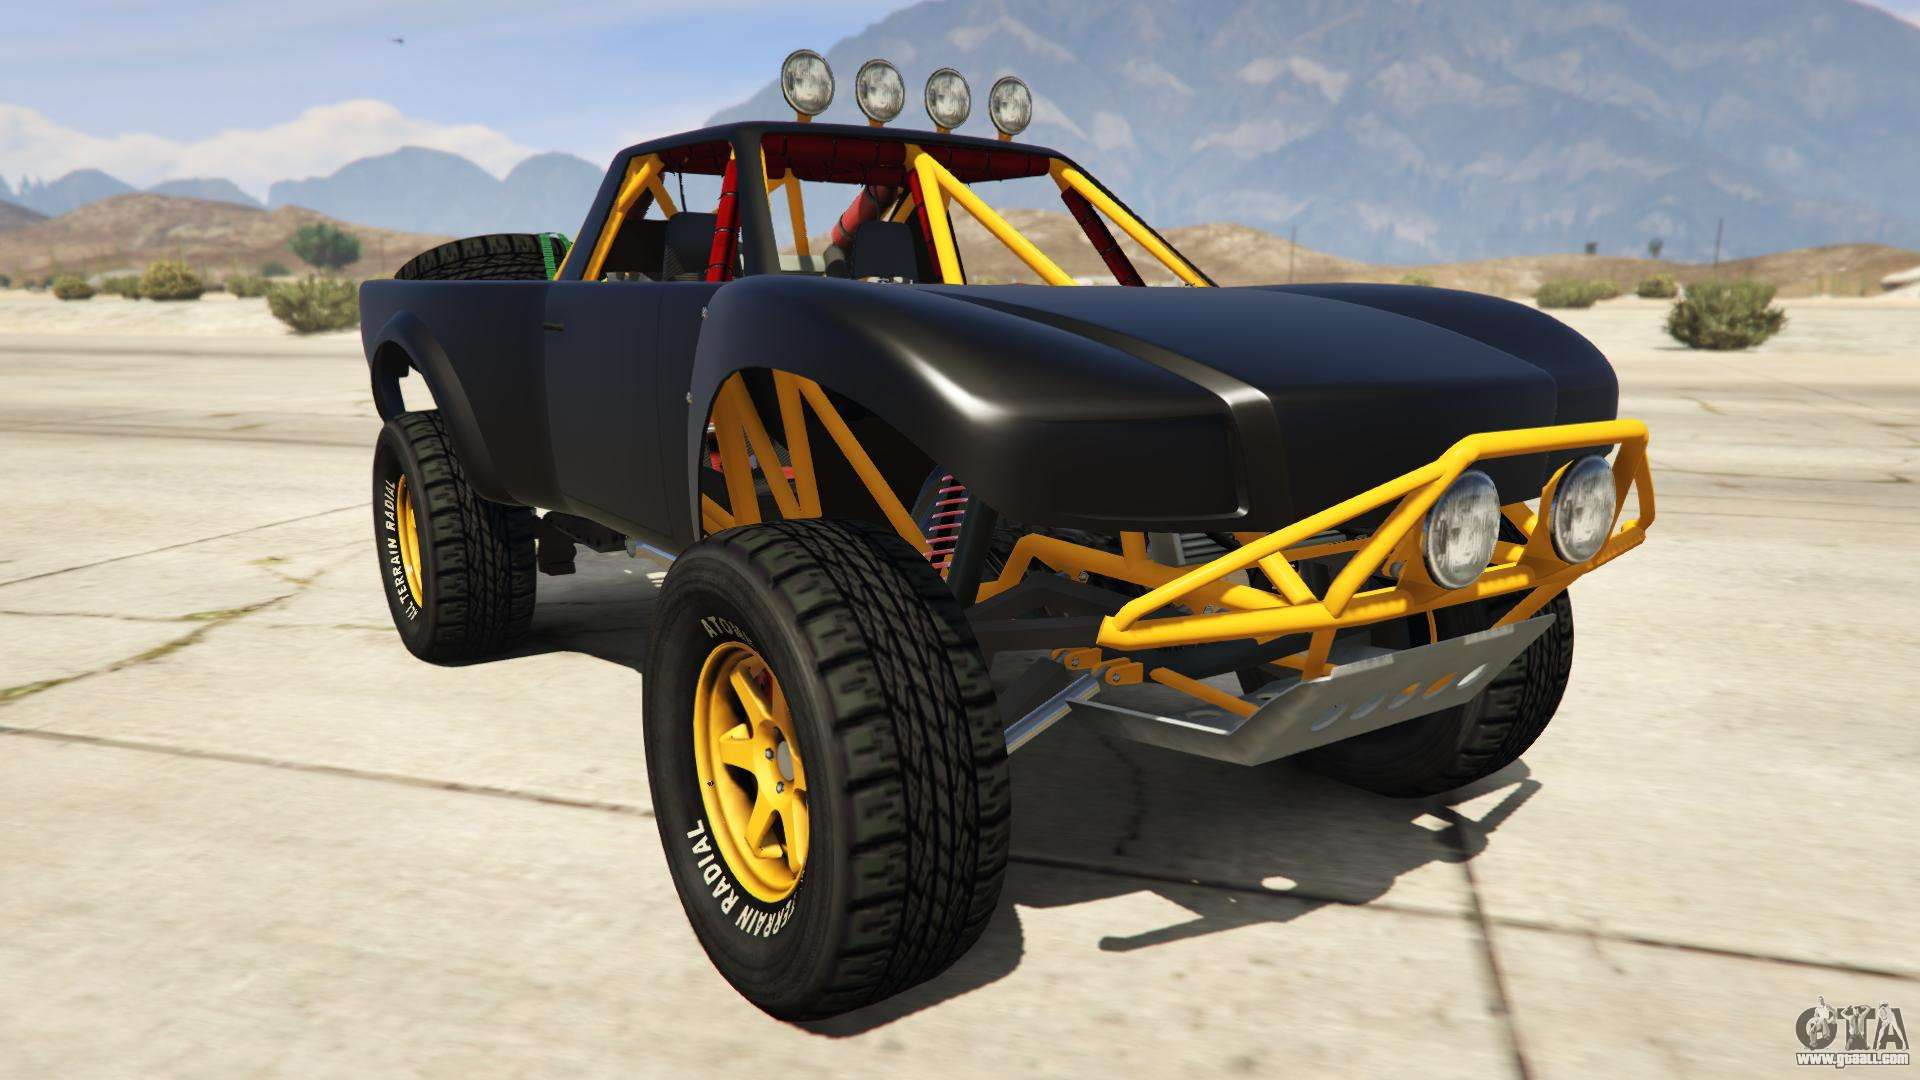 Vapid Trophy Truck from GTA Online - front view